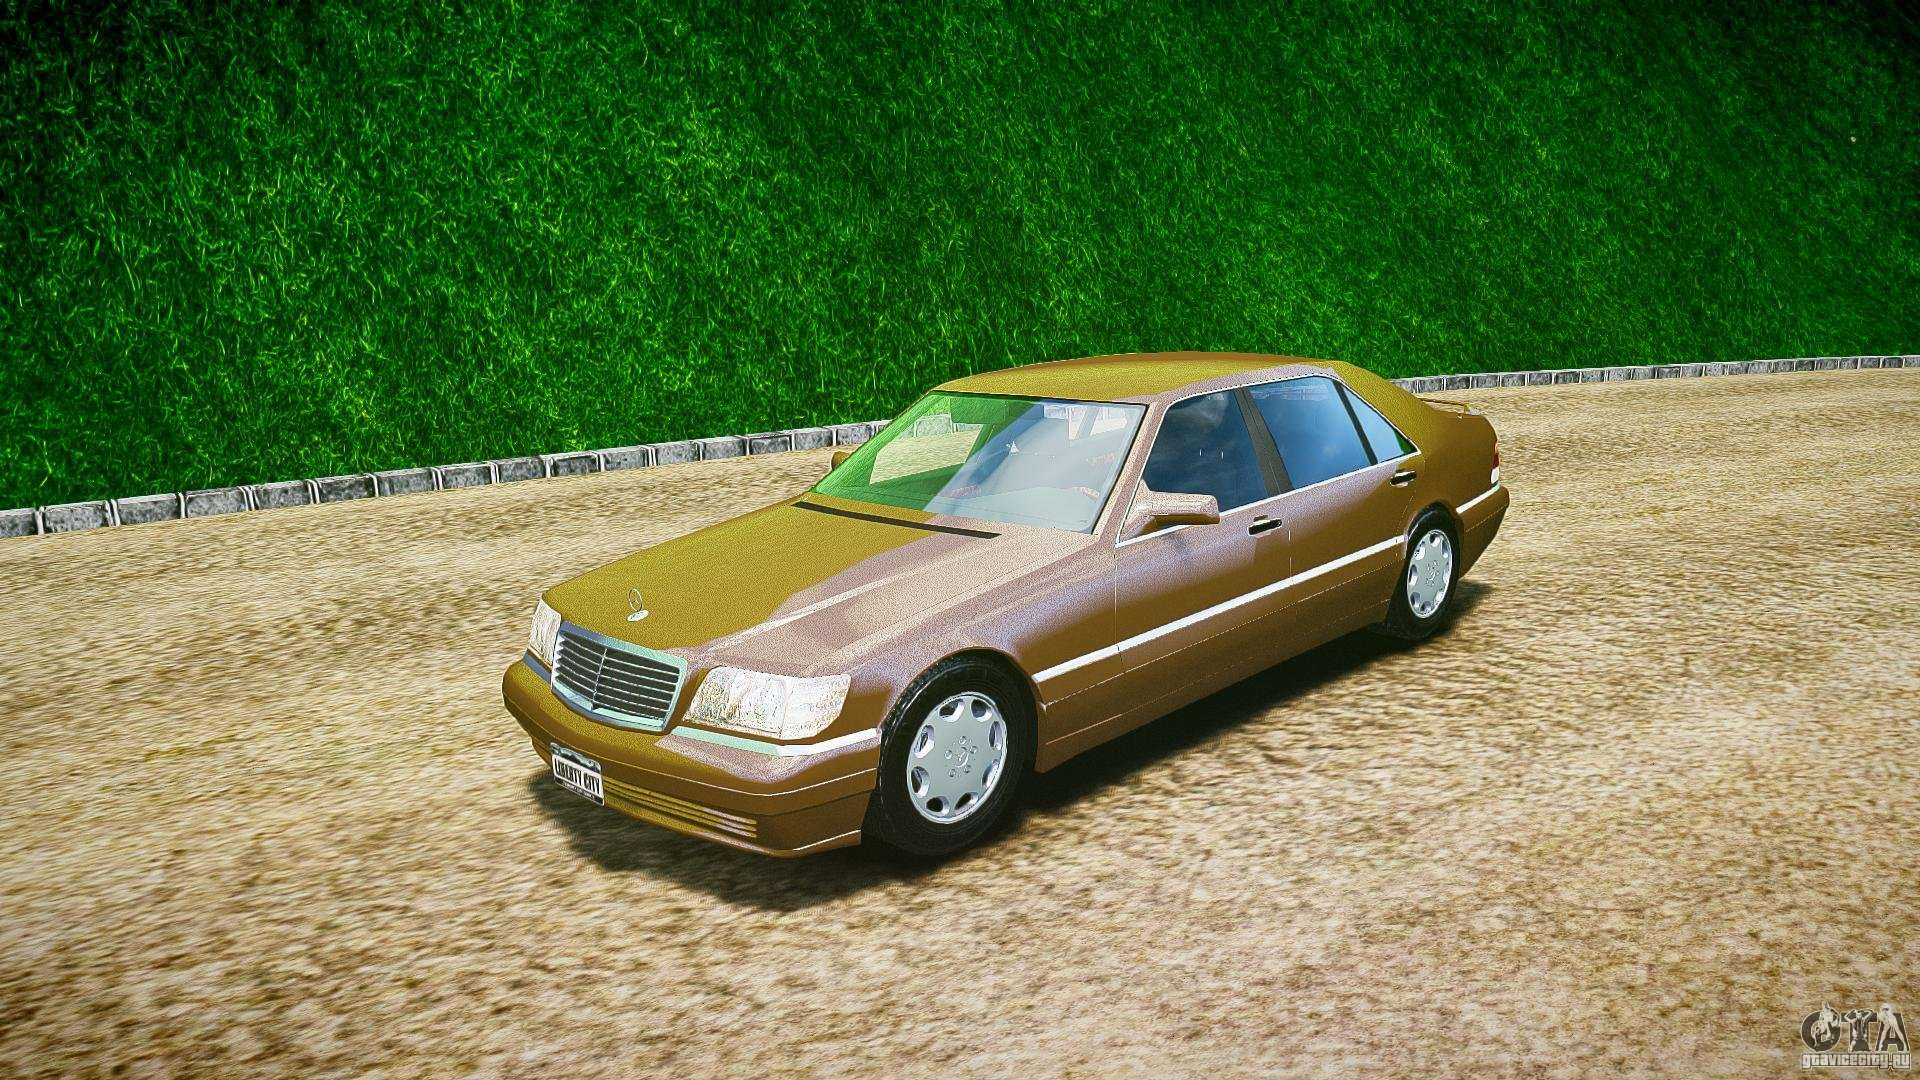 Mercedesbenzs Klassew as well Autoradio Android Inter  G Wifi Audio Vid O Gps Bluetooth Google Play Store Mirror Obd Mercedes Class C G M Ml A W S Clk C W W W Viano Vito W W additionally Gtaiv besides Mb S Side also Maxresdefault. on benz s 600 1998